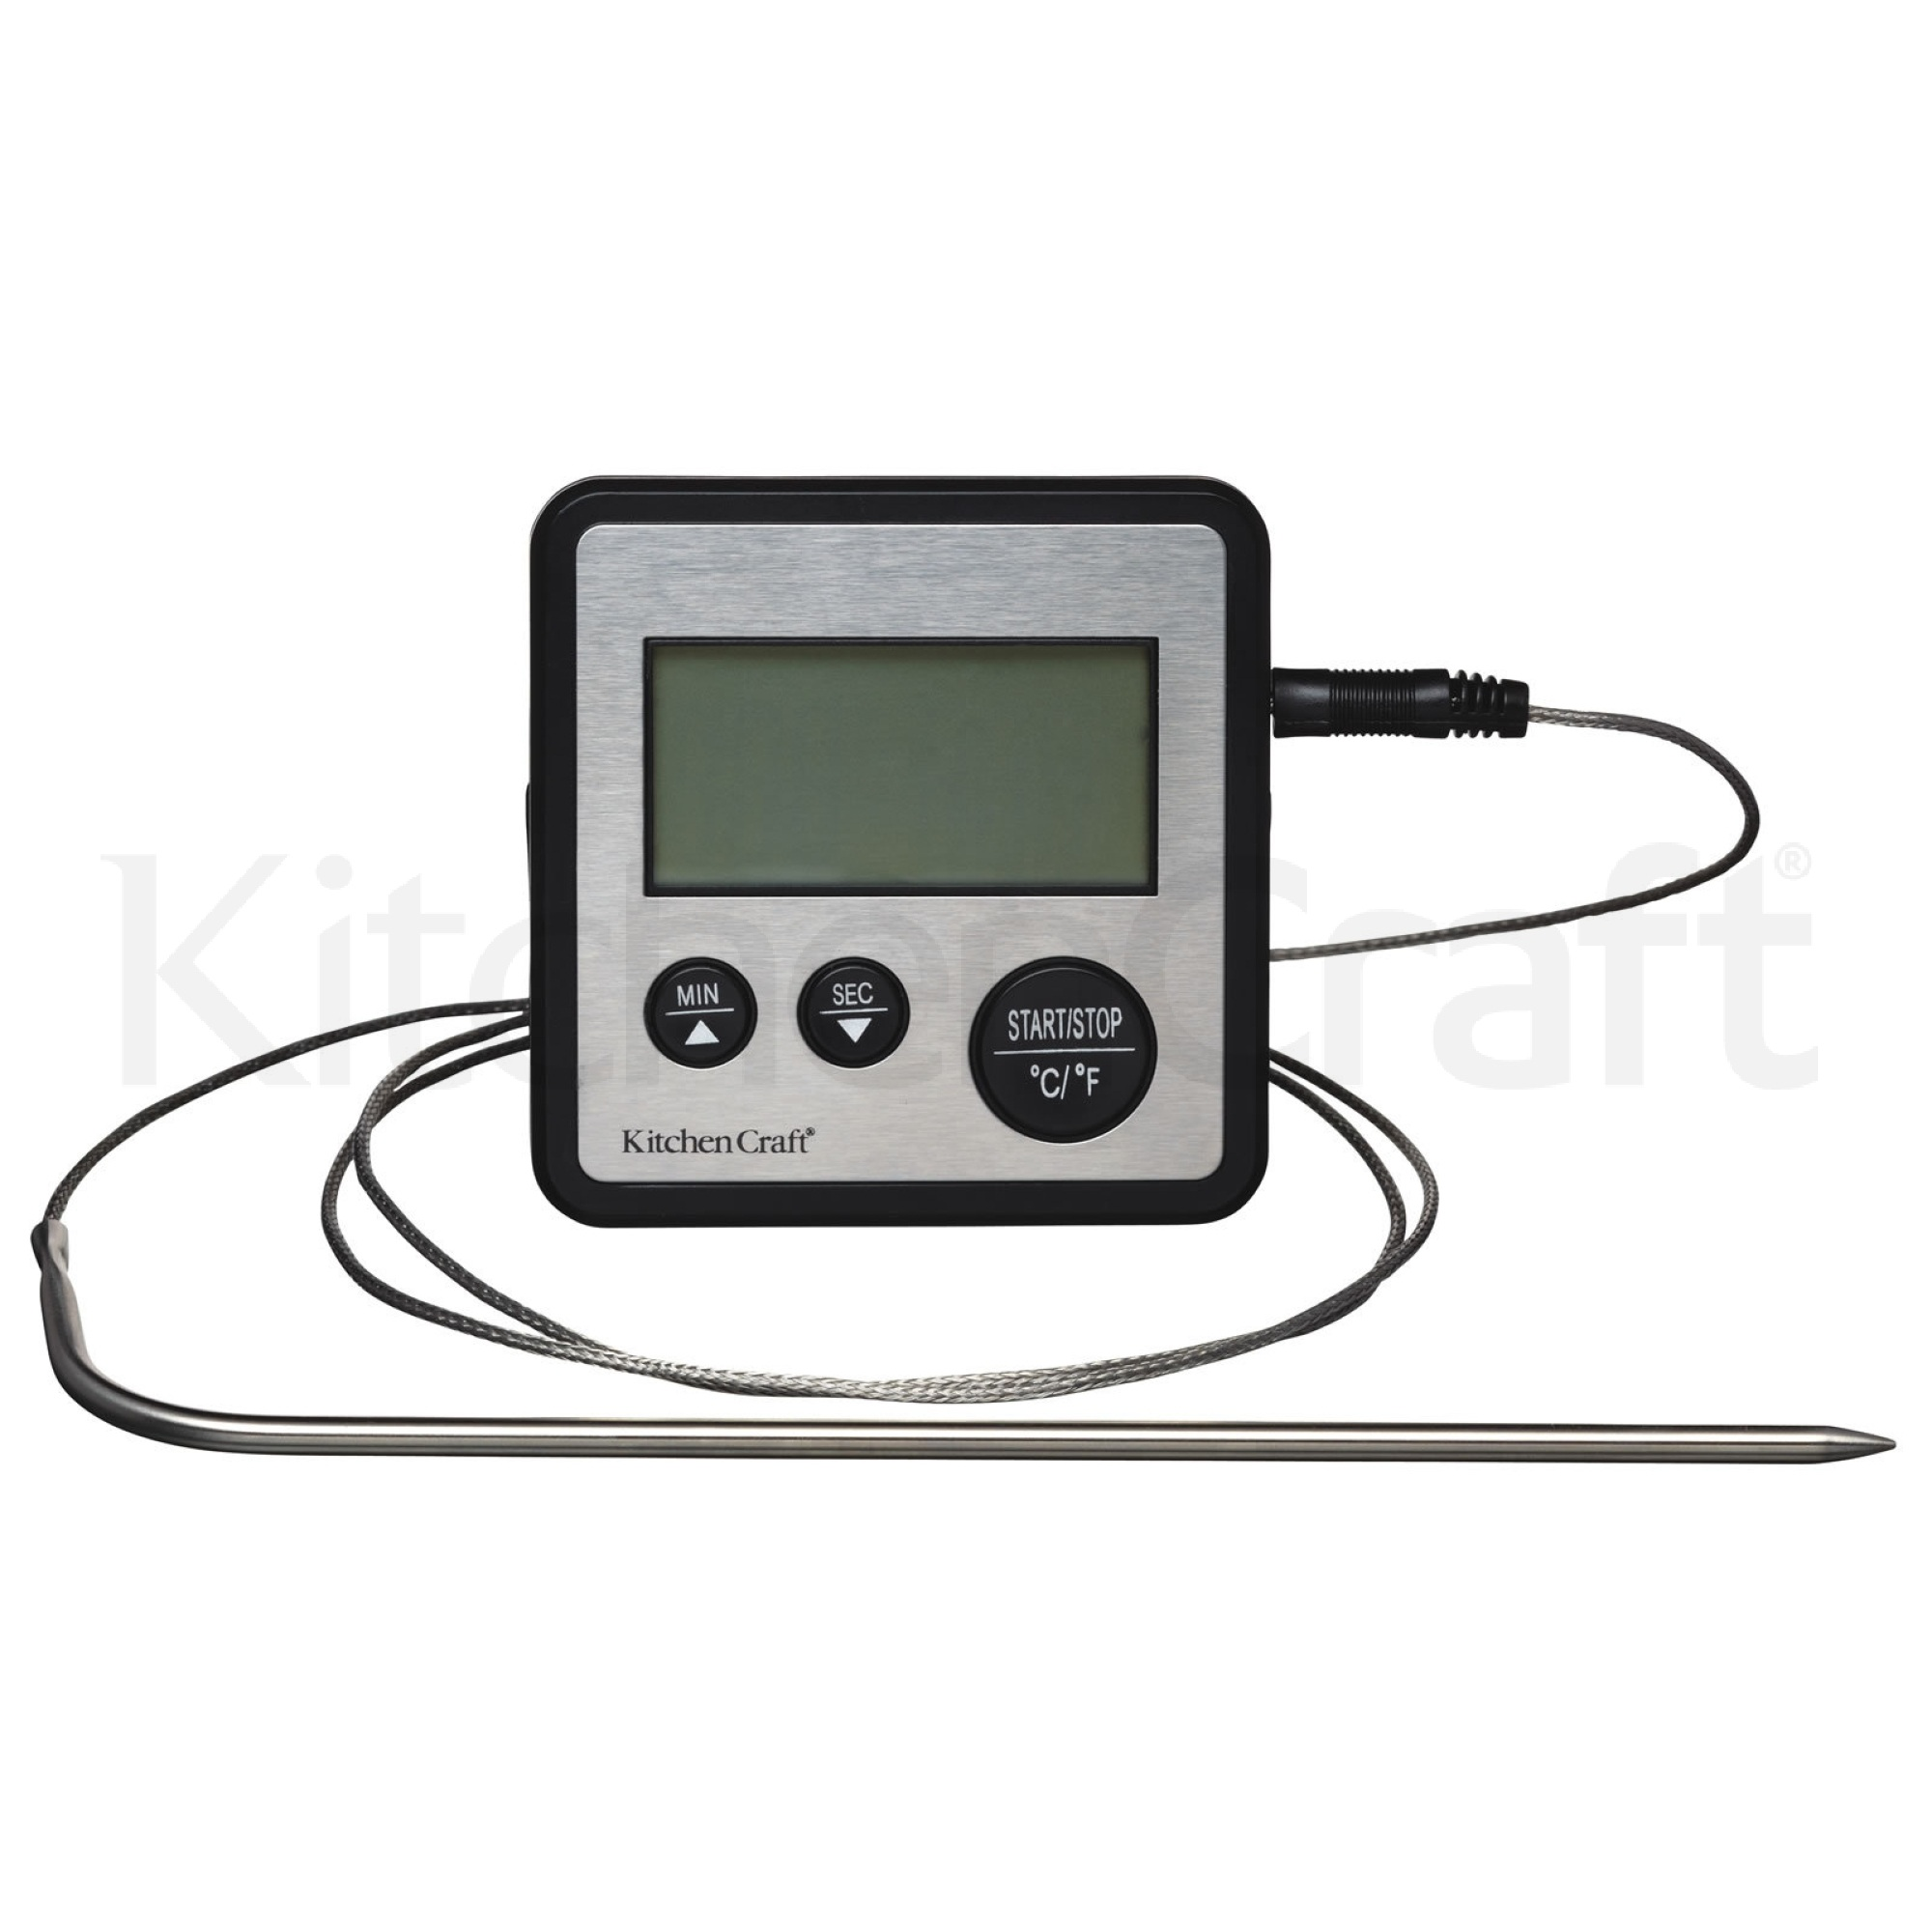 KitchenCraft Digital Cooking Thermometer and Timer   Thermometers ...